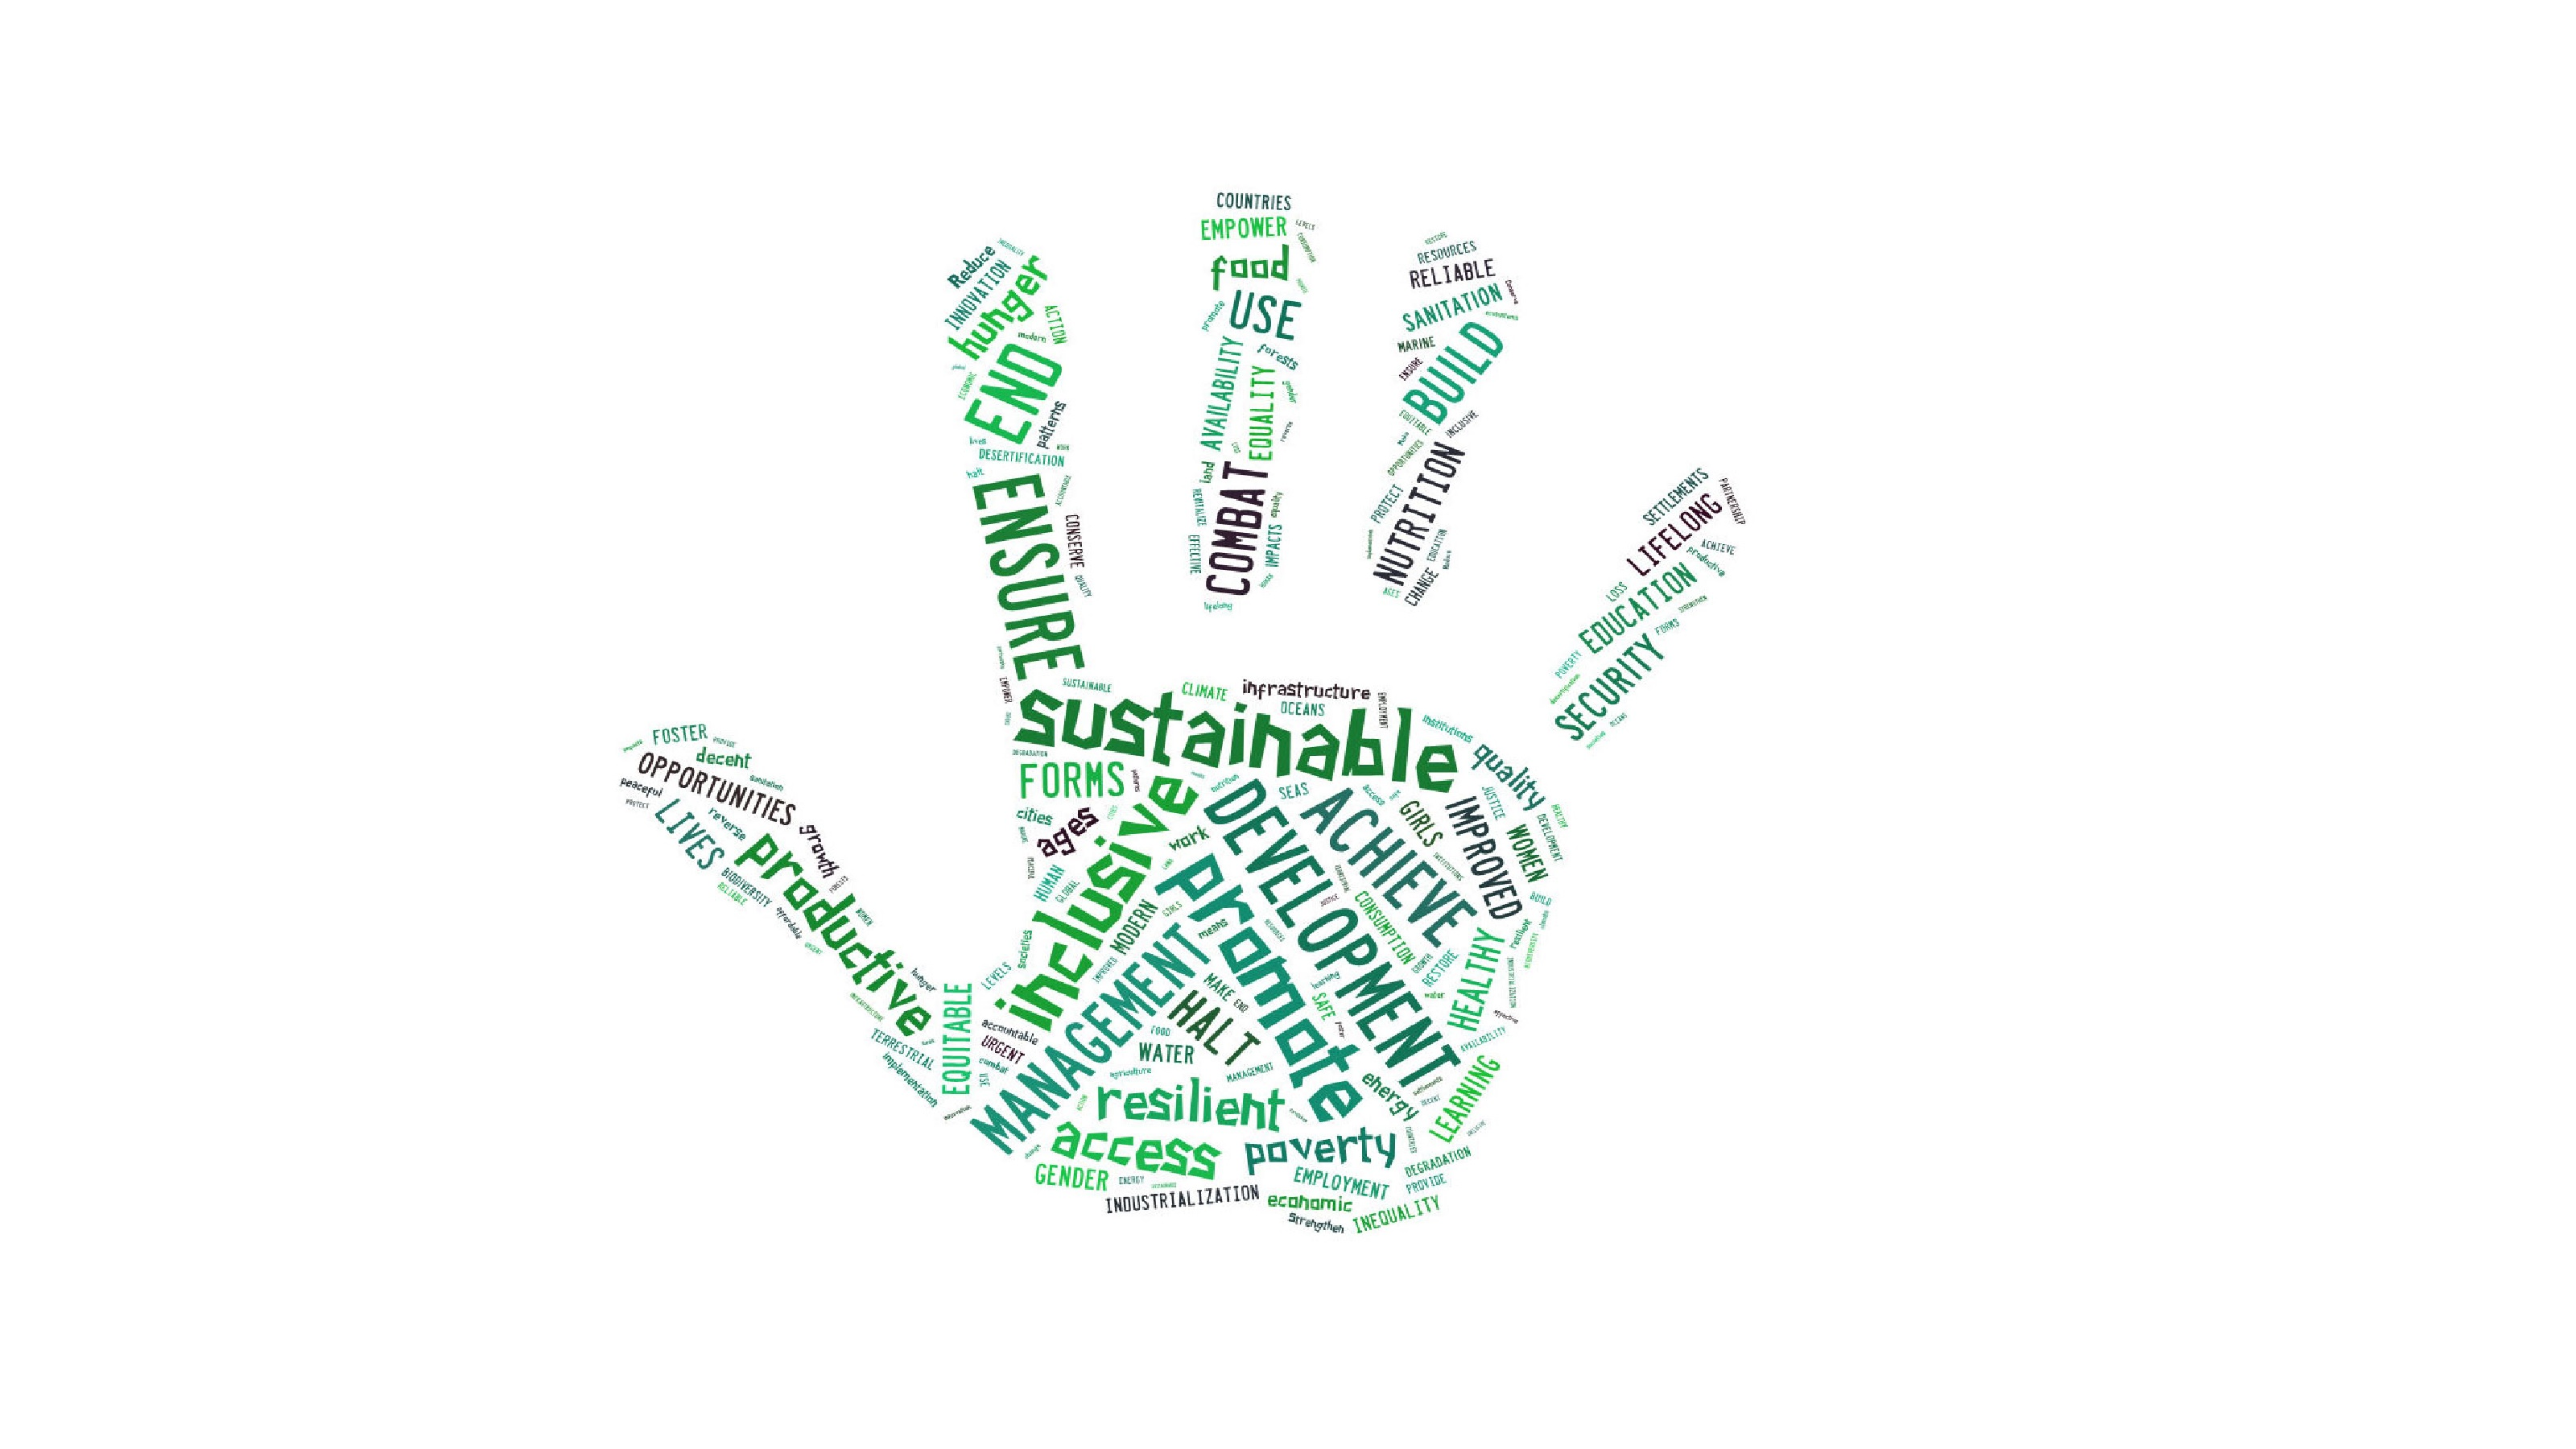 Sustainable development goals words in shape of hand.